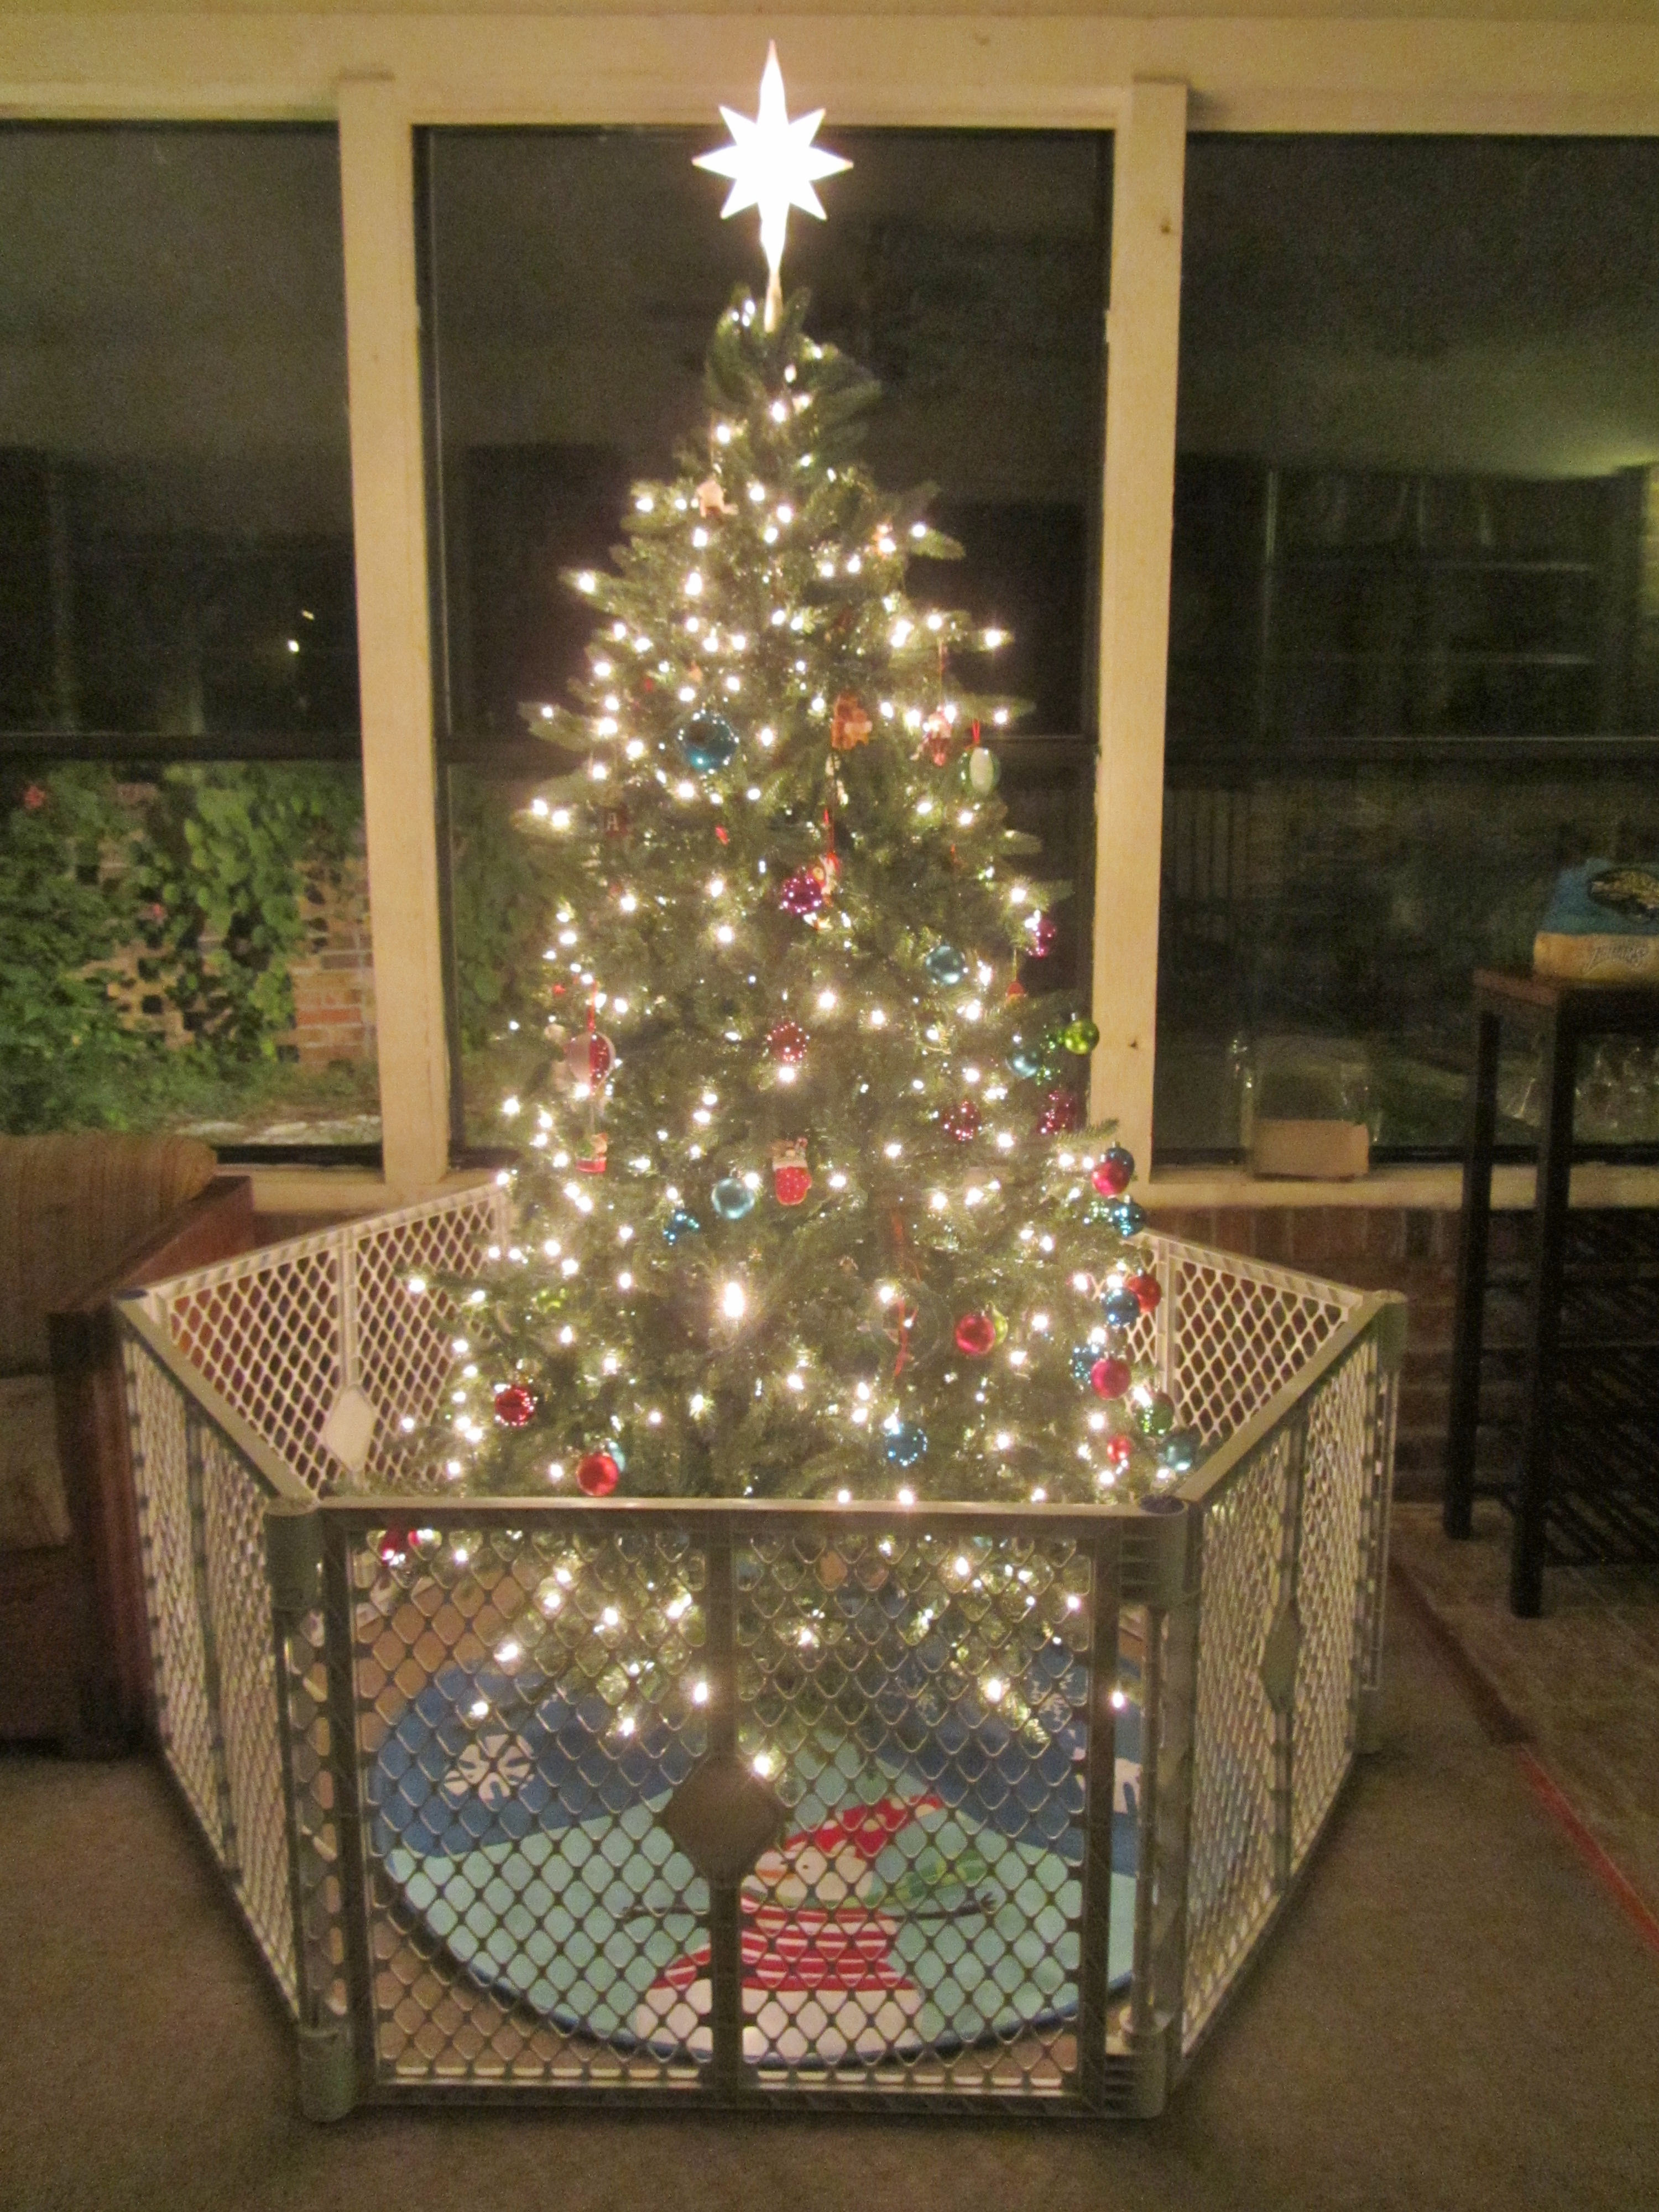 Toddler Proof Christmas Tree.Keeping A Clean And Organized Home At The Holidays Carrie